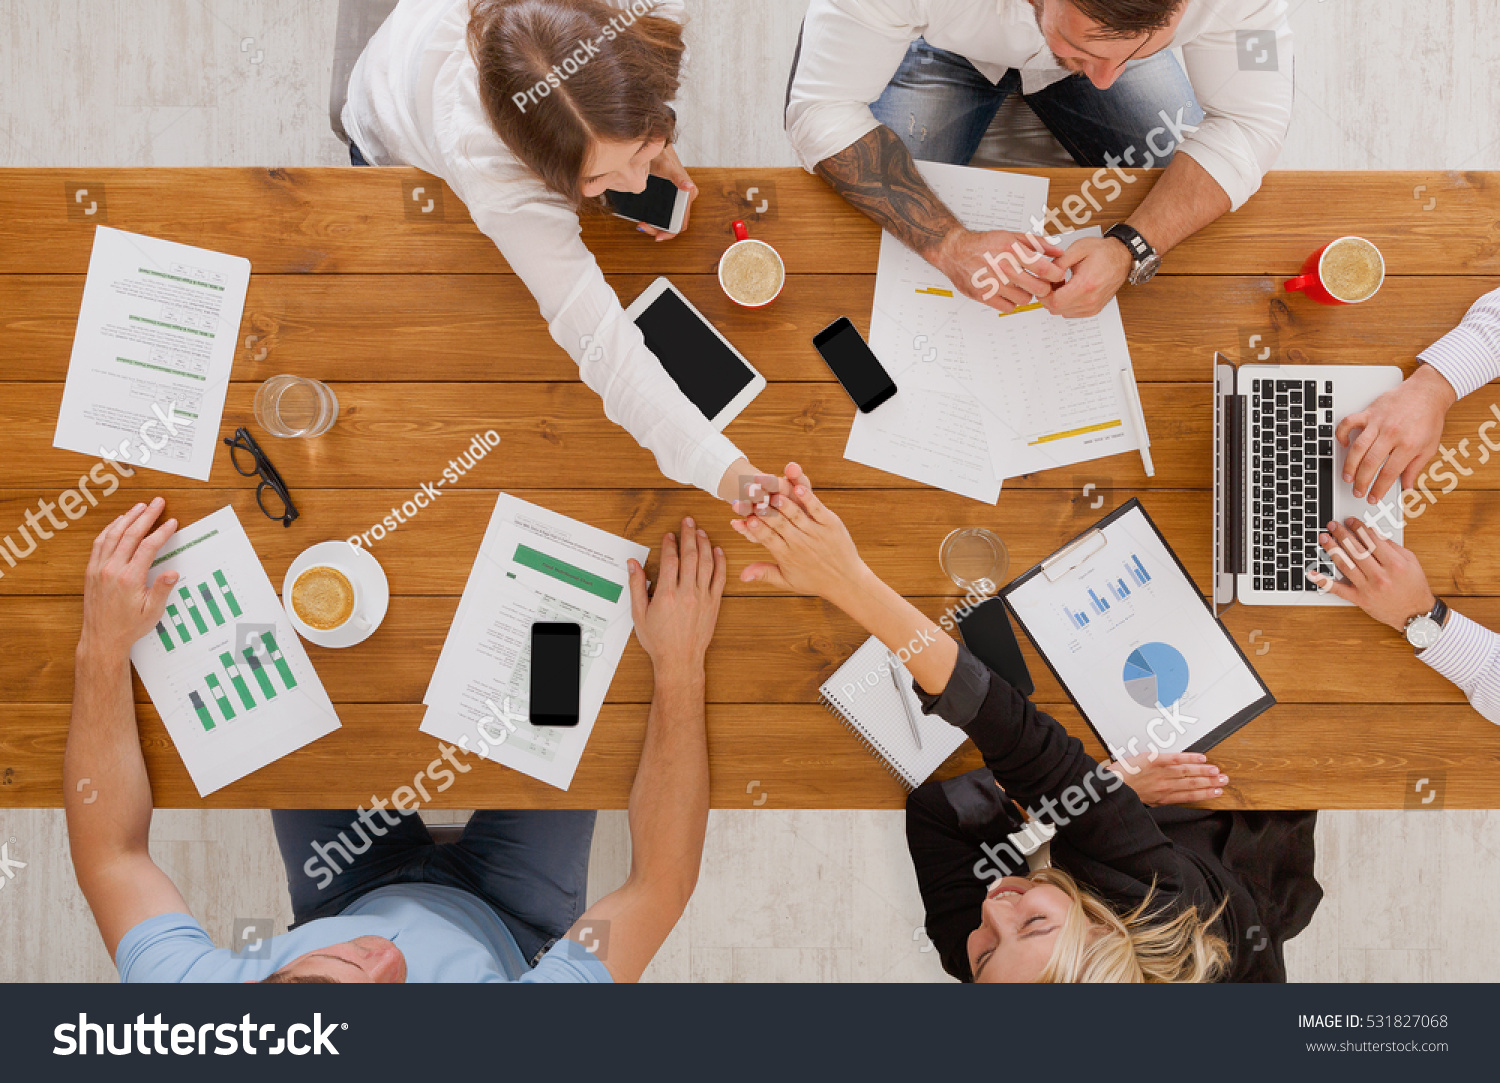 Royalty Free Agreement At Business Meeting Busy 531827068 Stock